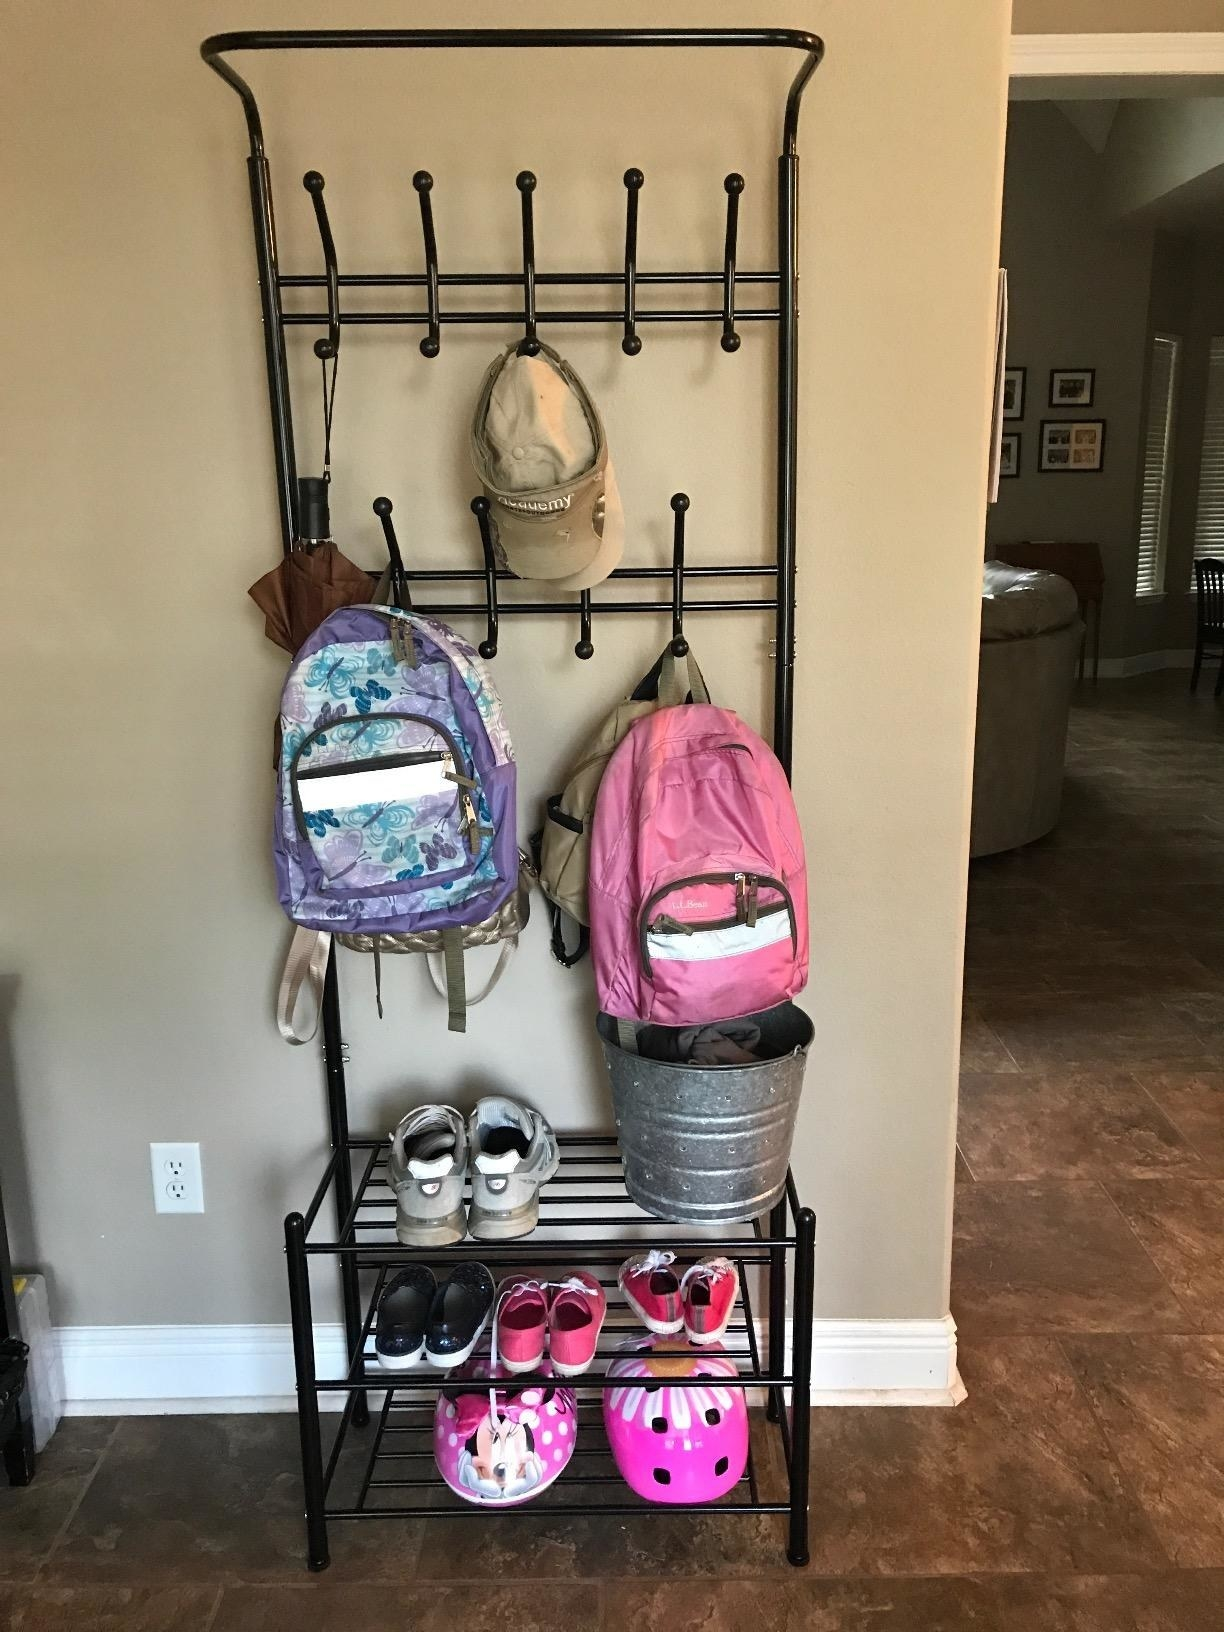 Reviewer pic of the black metal coat and shoe rack with assorted backpacks on the hooks and assorted shoes and helmets on the three racks